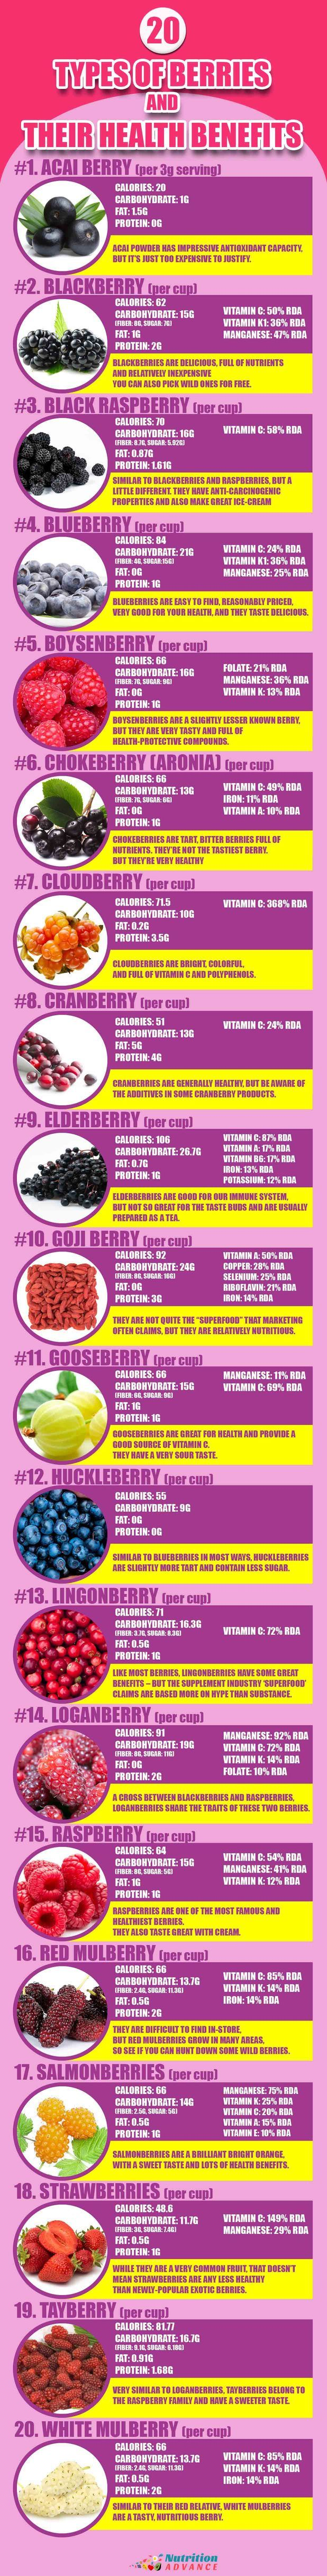 20 Different Types of Berries and Their Nutritional Information - some of these are popular berries and some are lesser known - which one do you like the best?